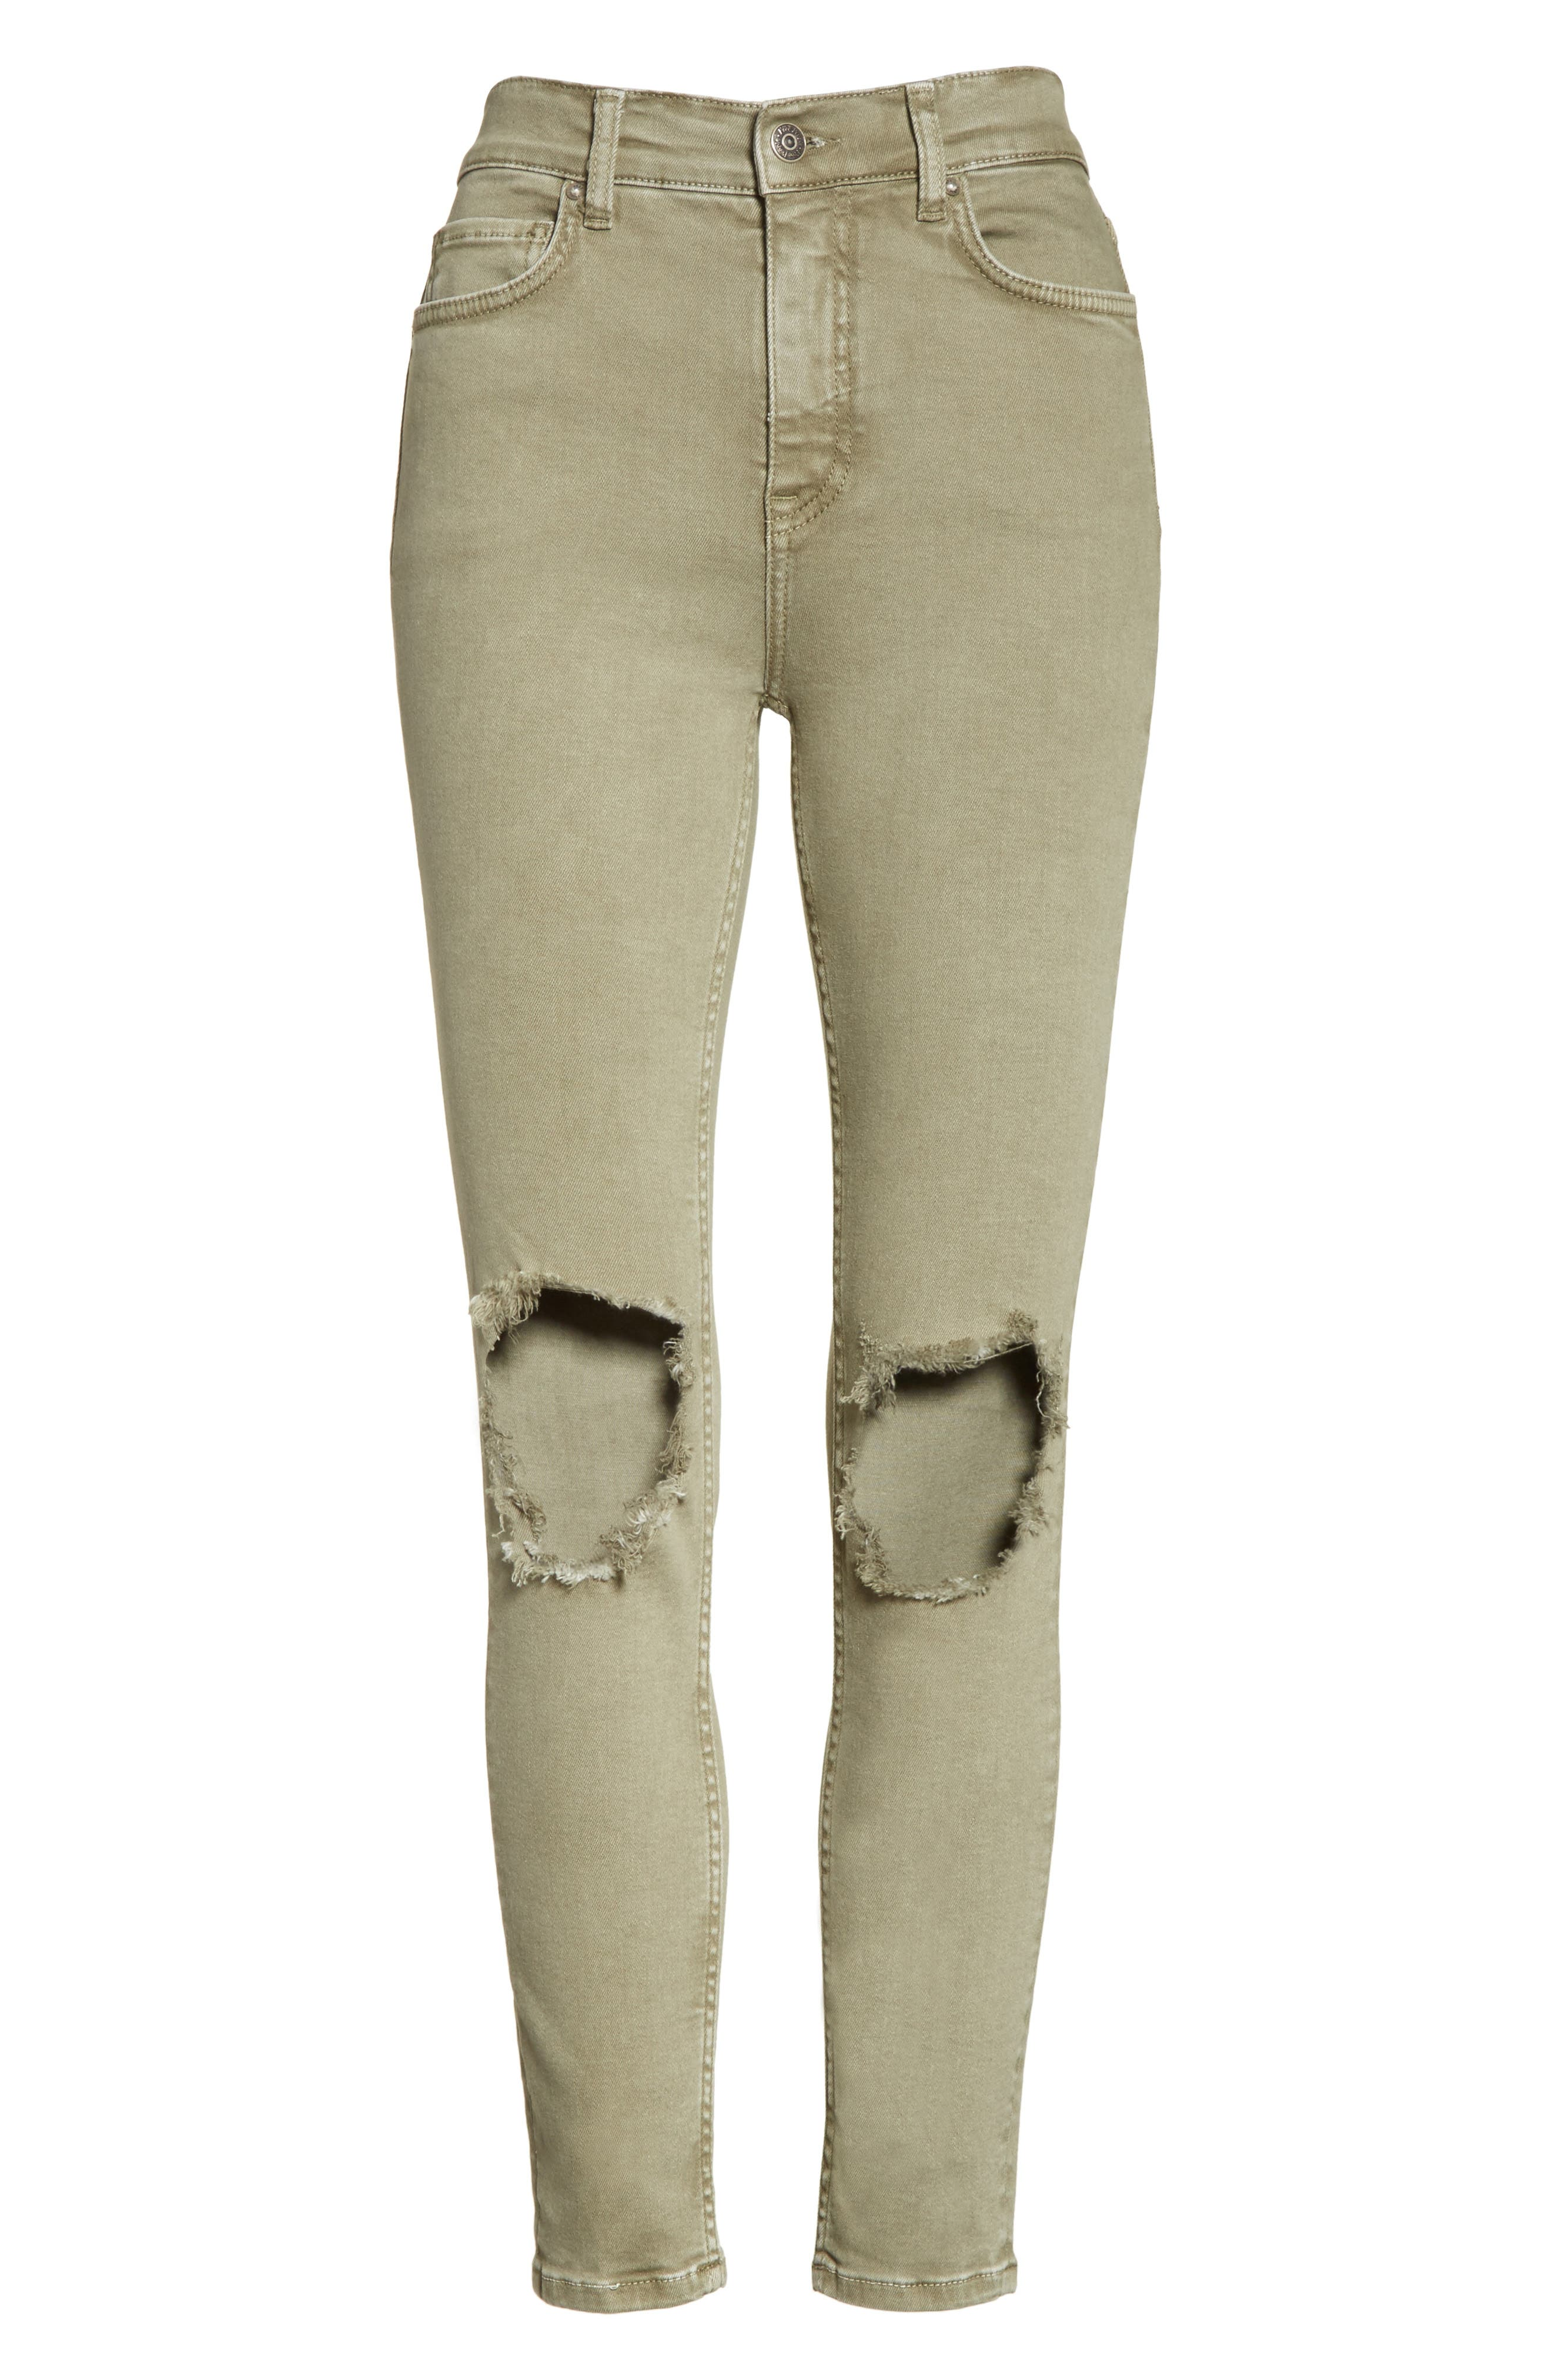 FREE PEOPLE, We the Free by Free People High Rise Busted Knee Skinny Jeans, Alternate thumbnail 6, color, 303